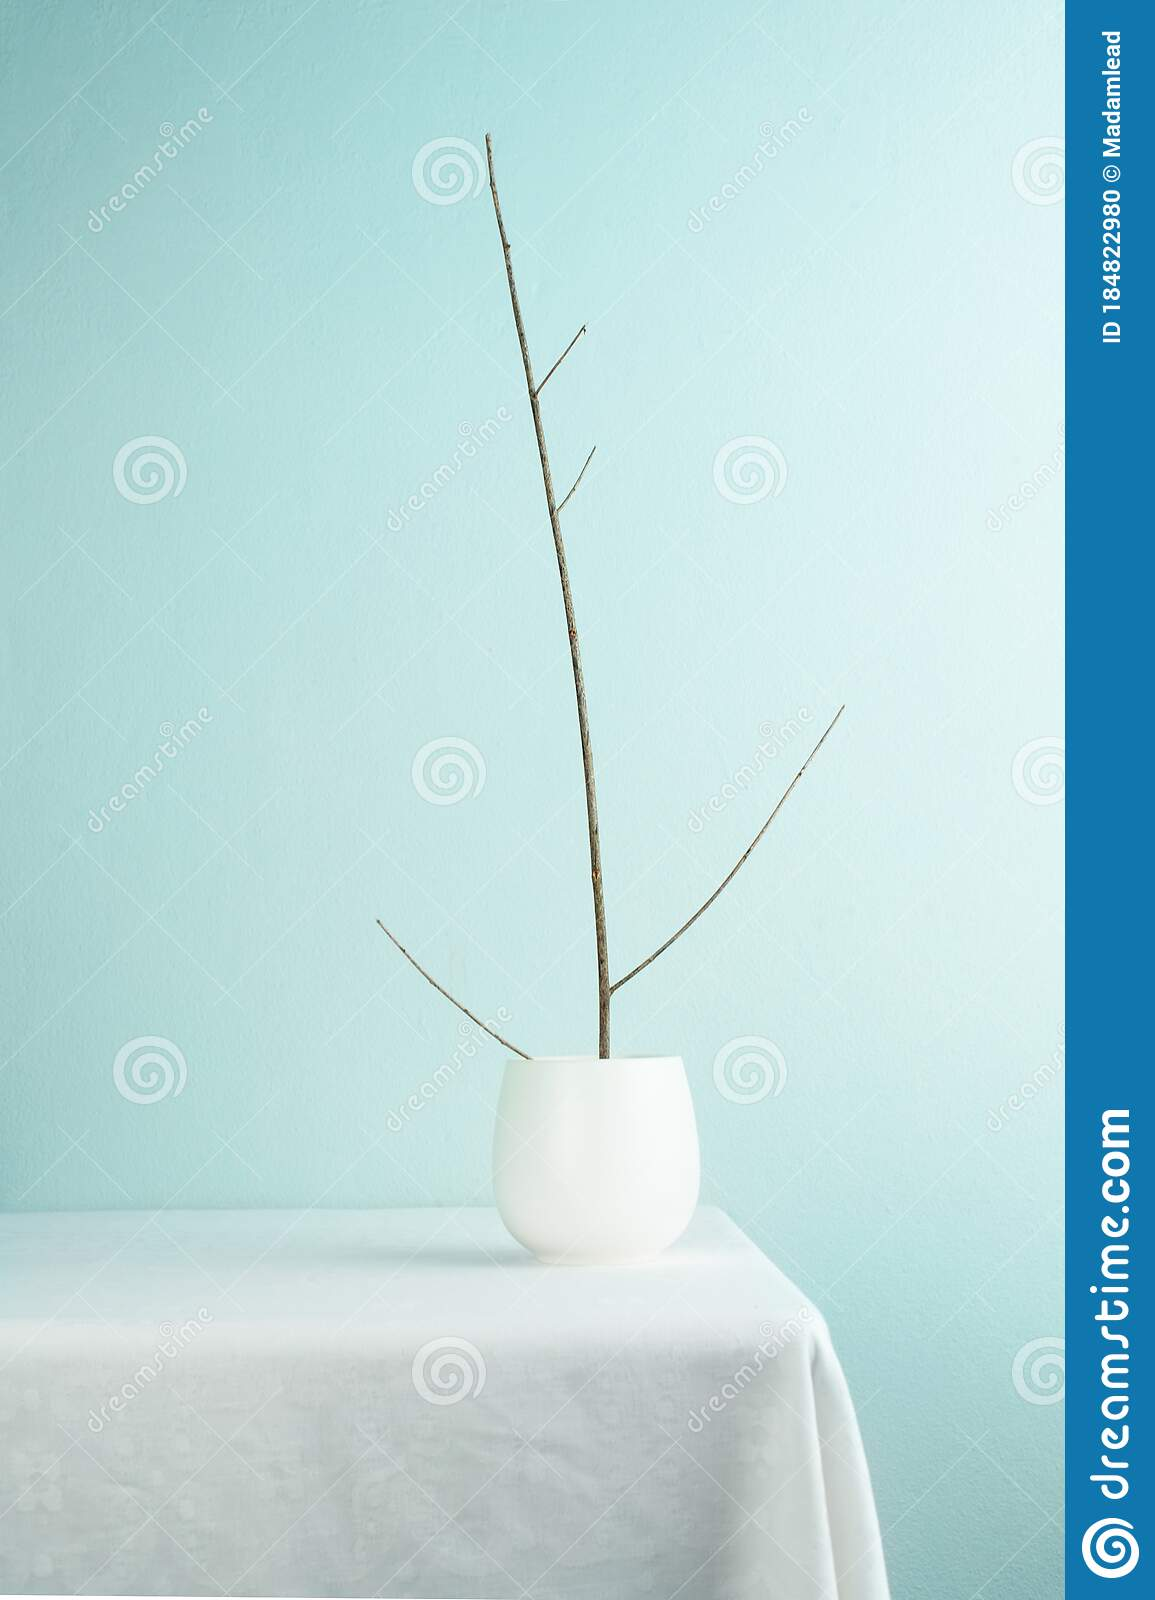 White Ceramic Tea Cup With Wood Branch On Table Interior Decoration With Light Green Blue Wall Background Stock Photo Image Of Oriental Relax 184822980